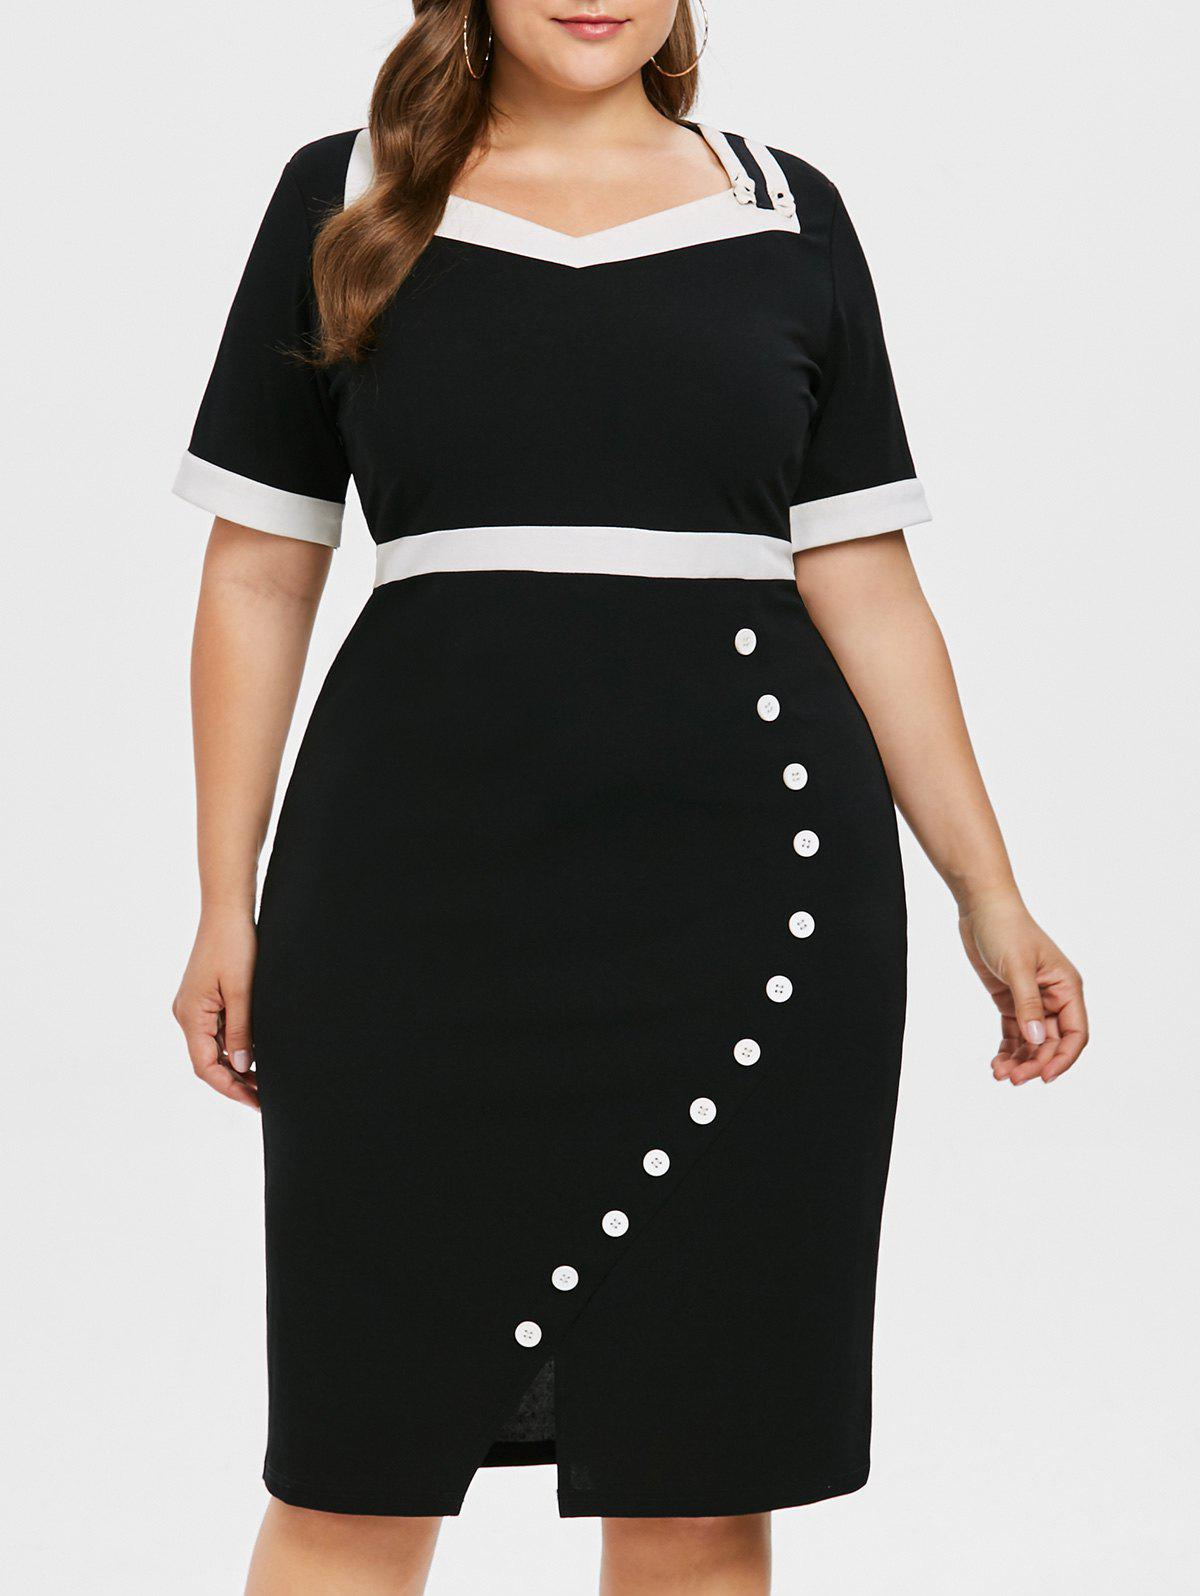 Color Block Plus Size Bodycon Dress - BLACK L